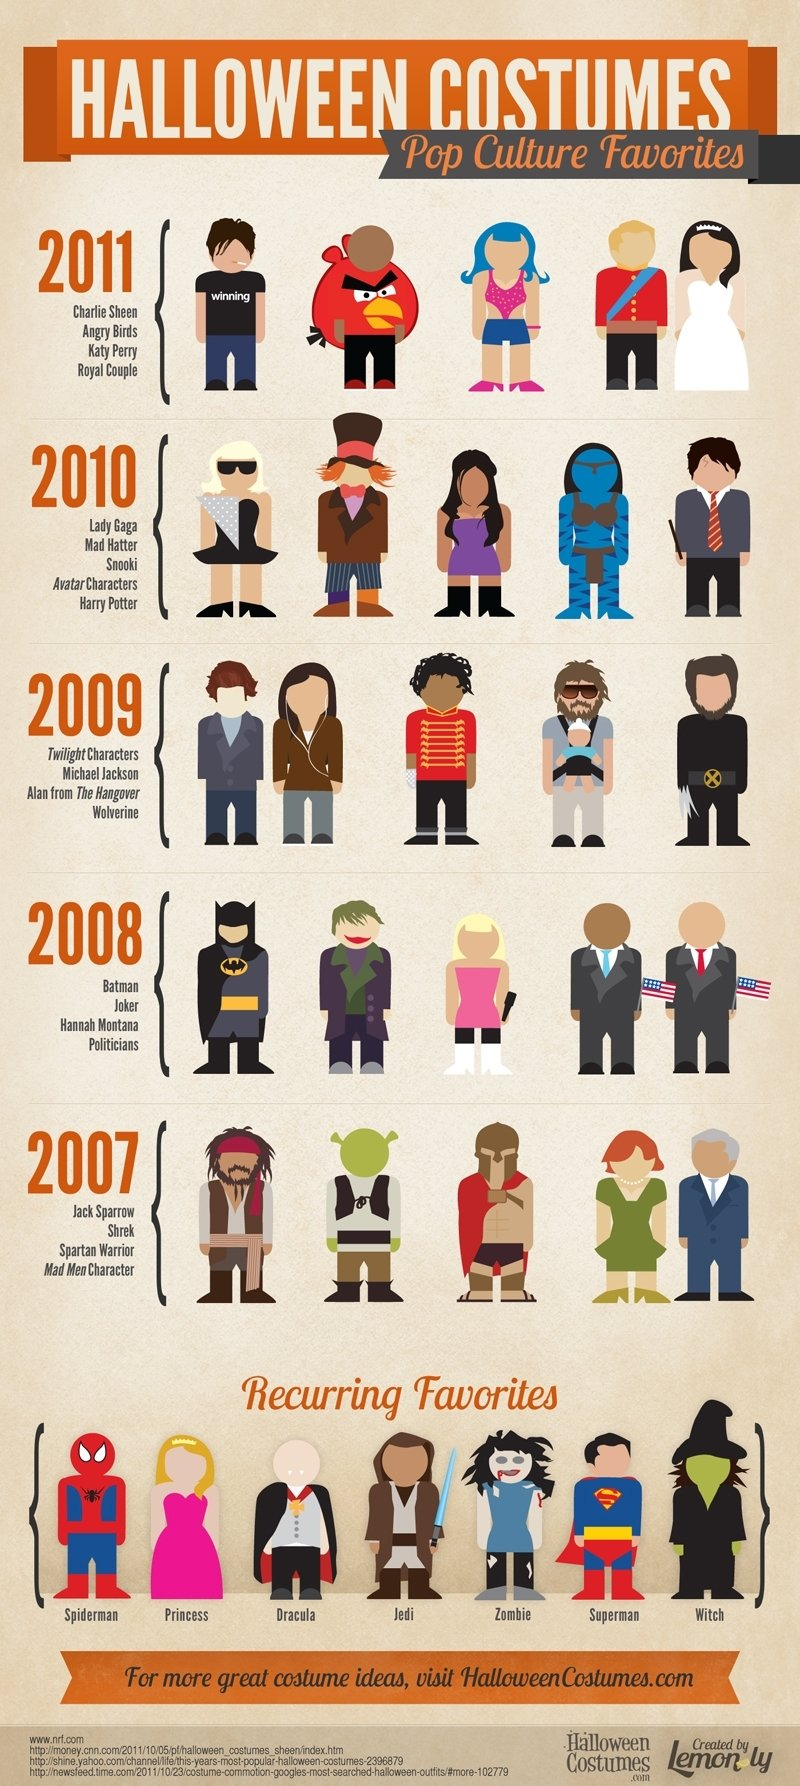 10 Cute List Of Halloween Costume Ideas halloween costume ideas pop culture favorites infographic 2020